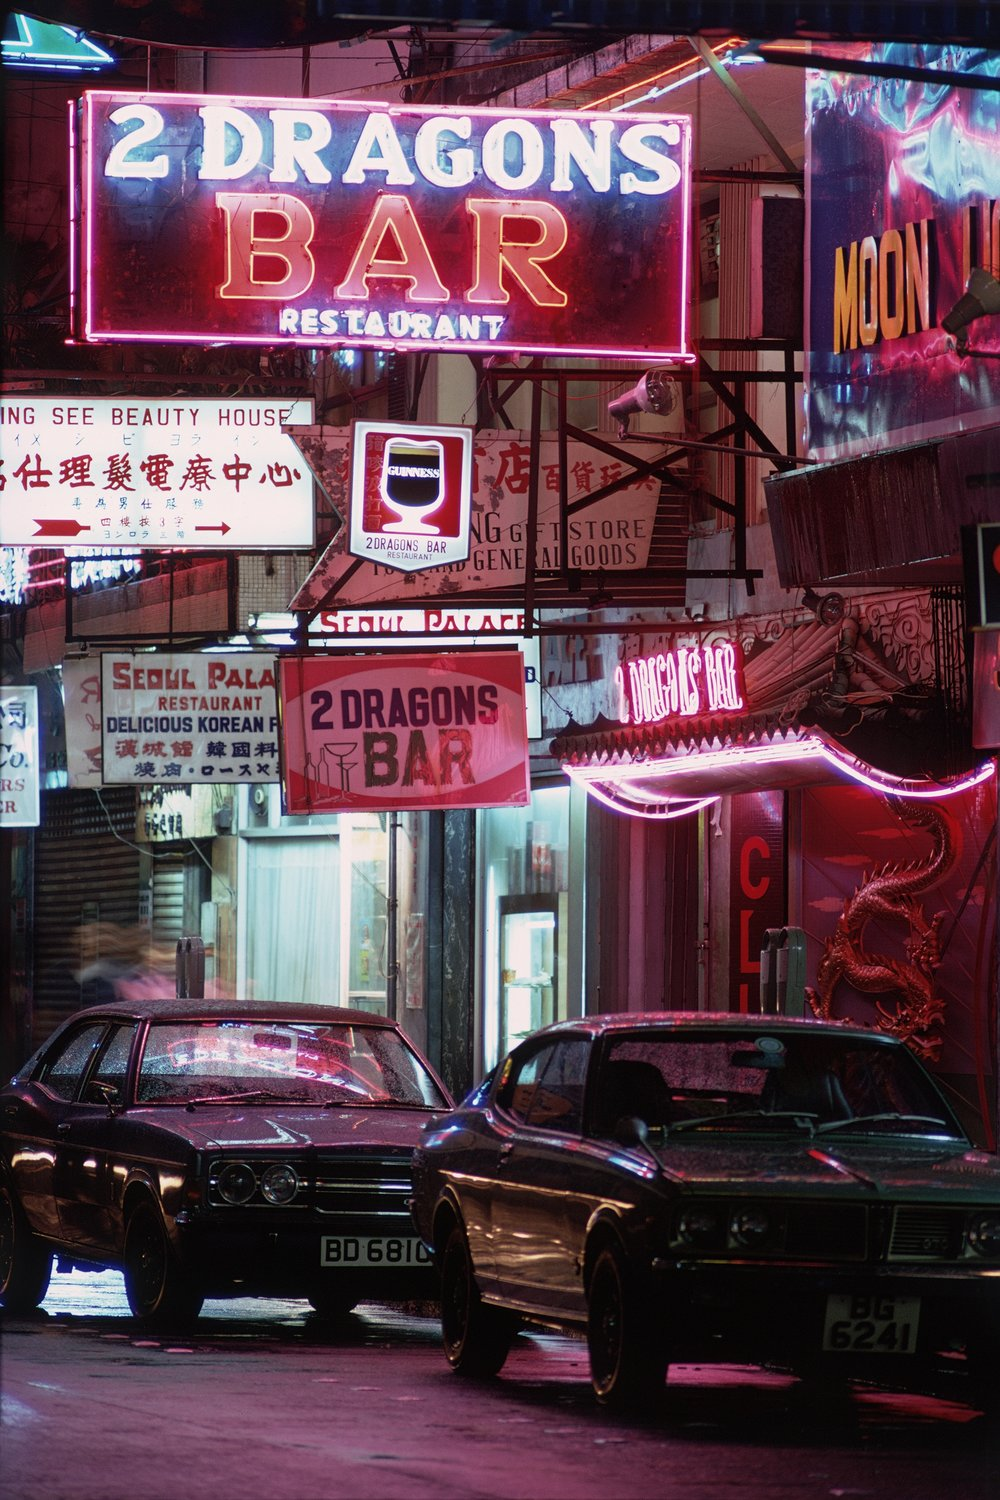 Greg Girard, 2 dragons bar, Hong Kong 1975 .jpg